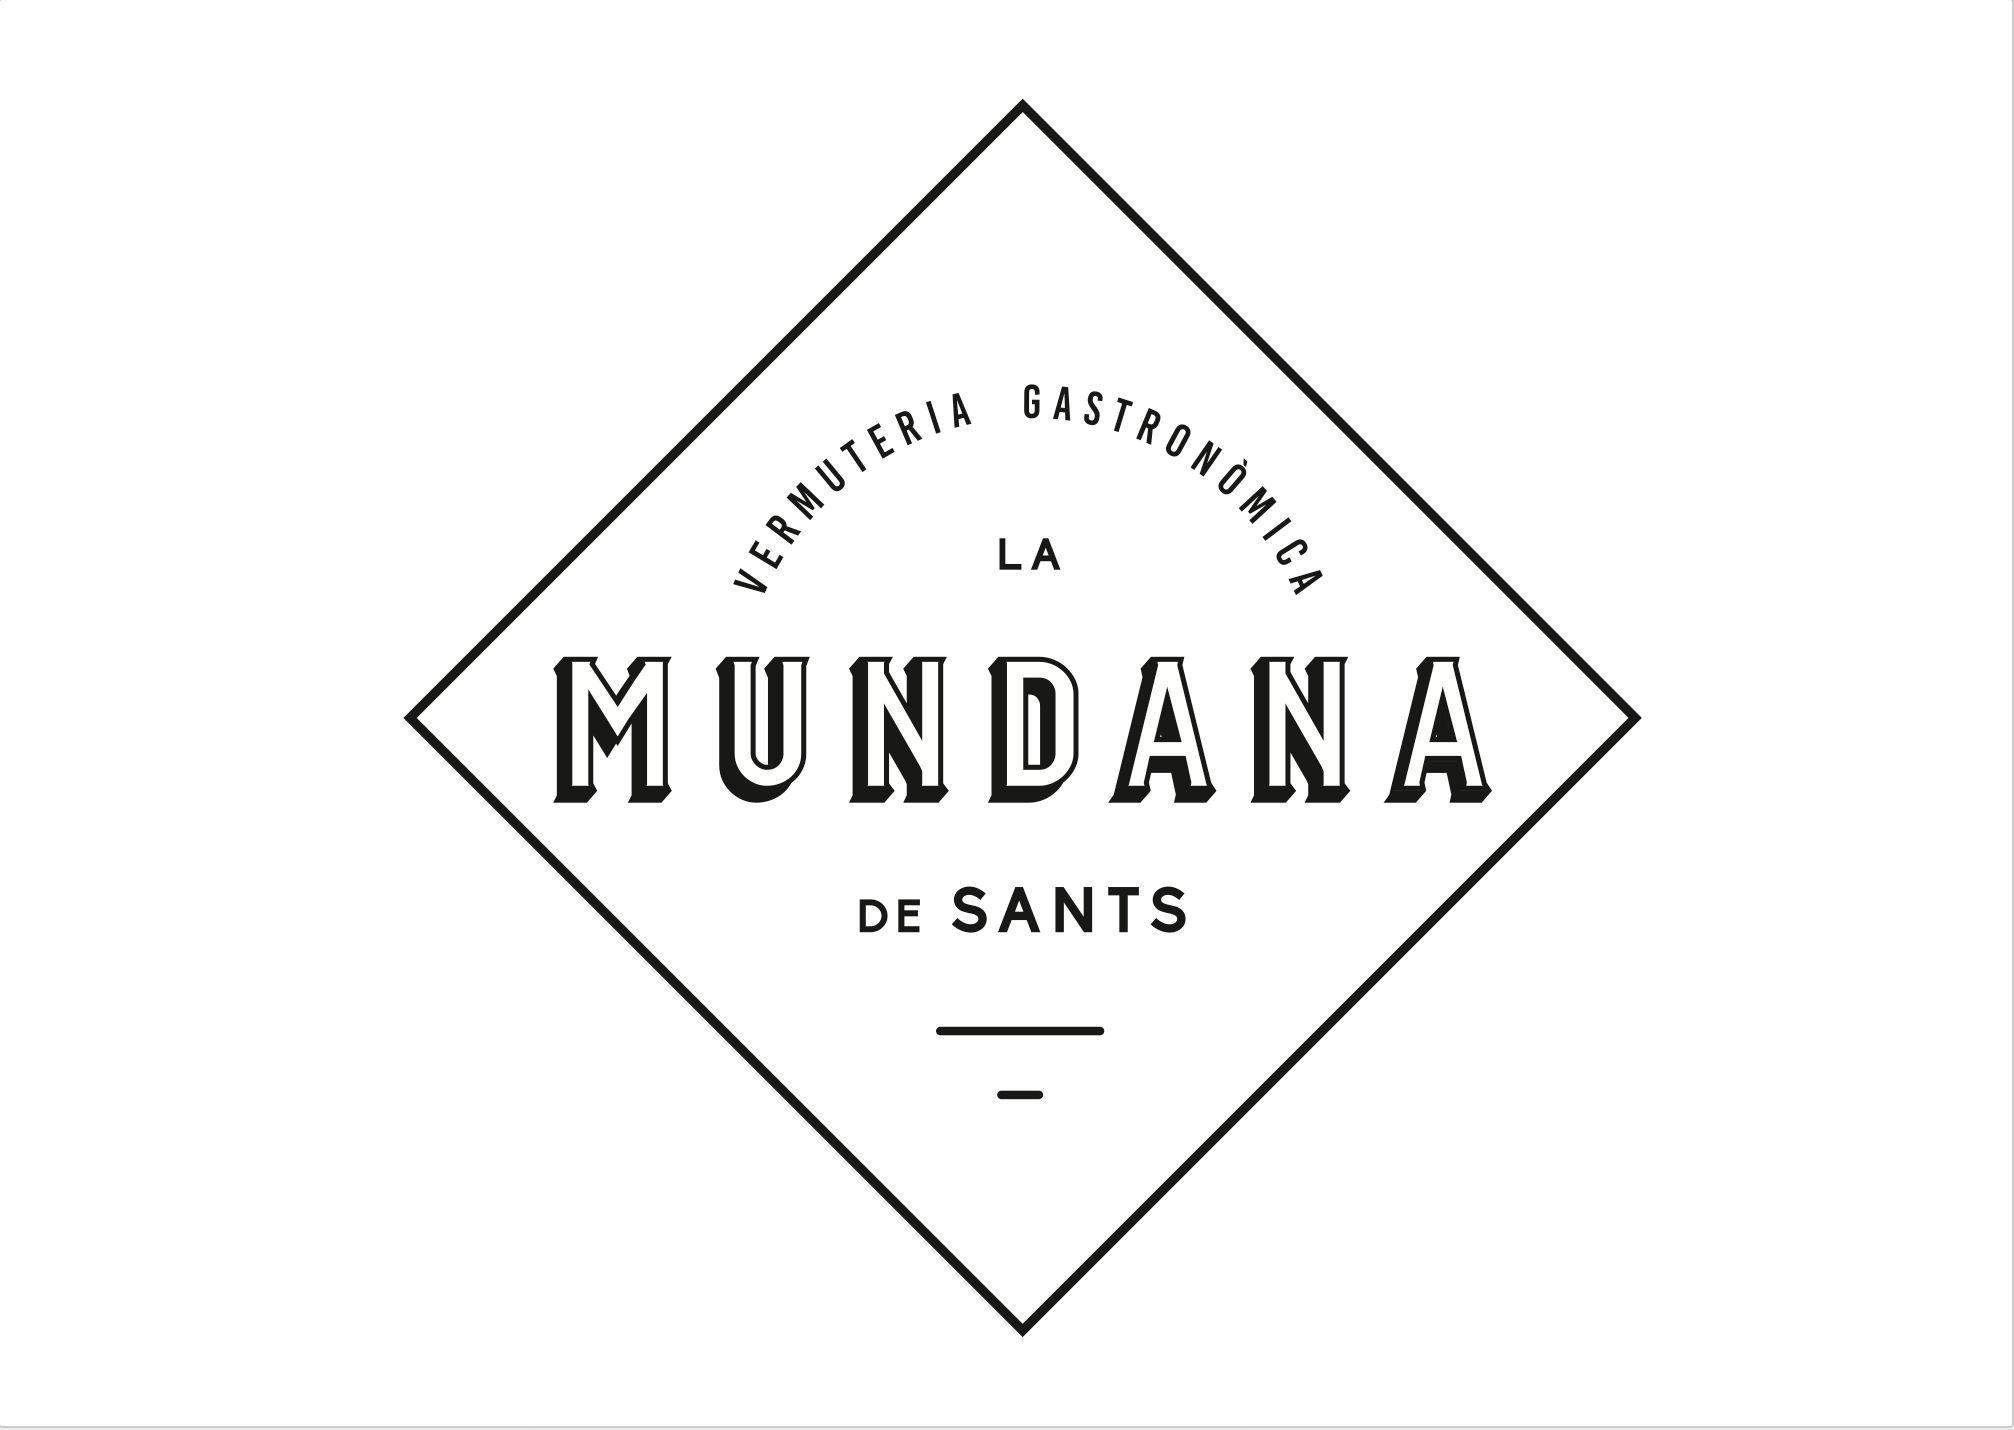 La Mundana